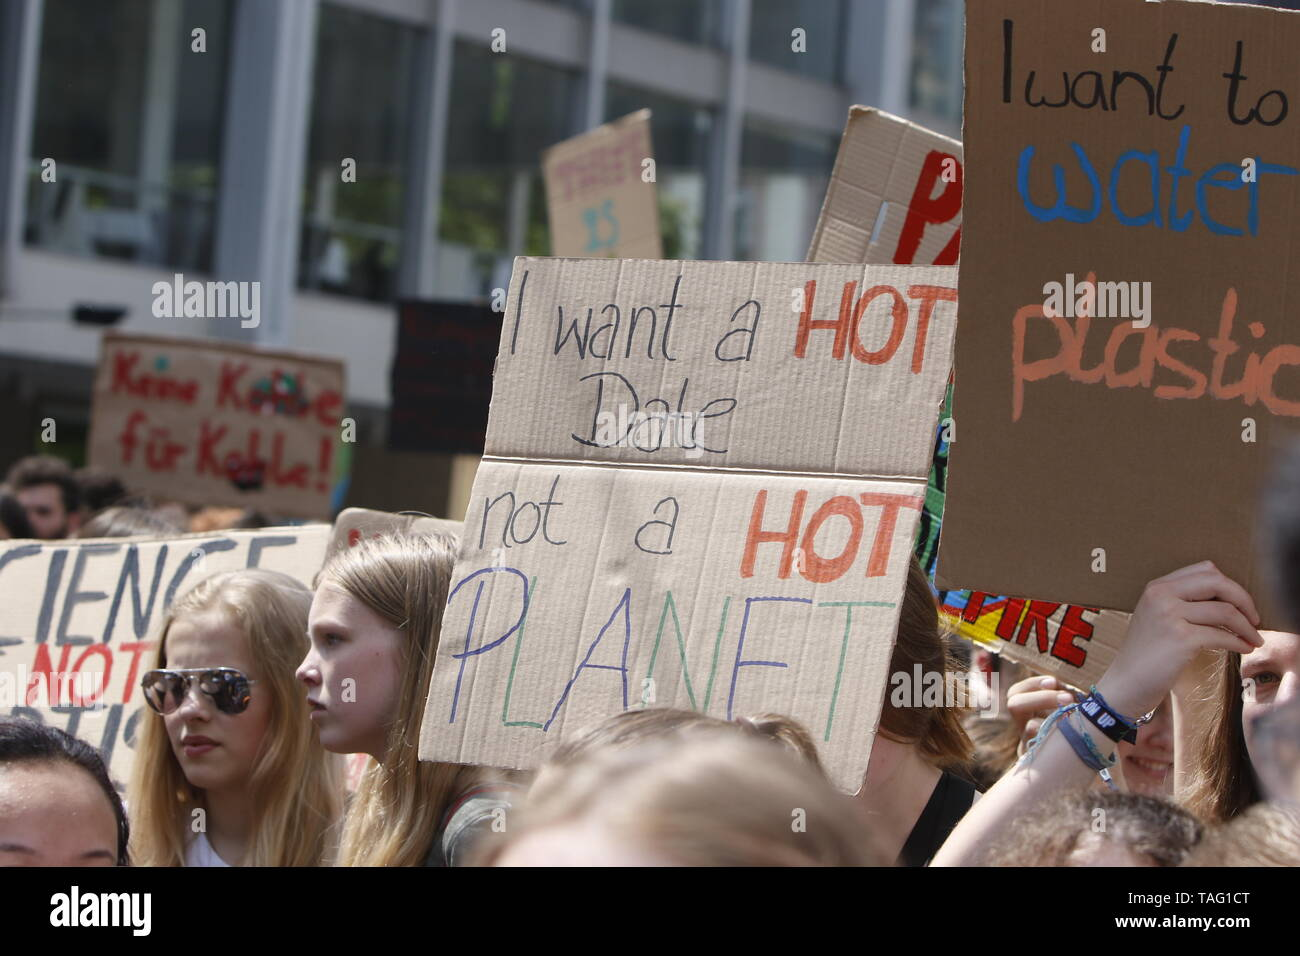 A protester carries a sign that reads 'I want a hot date not a hot planet'. Around 4,500 young people marched through Frankfurt to the European Central Bank, to protest against the climate change and for the introduction of measurements against it. The protest took place as part of an Europe wide climate strike, two days ahead of the 2019 European elections. (Photo by Michael Debets/Pacific Press - Stock Image